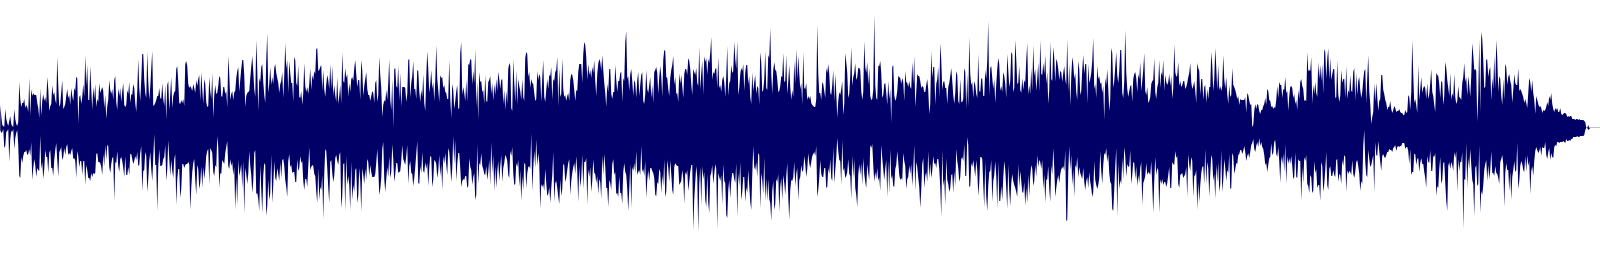 waveform of track #108295